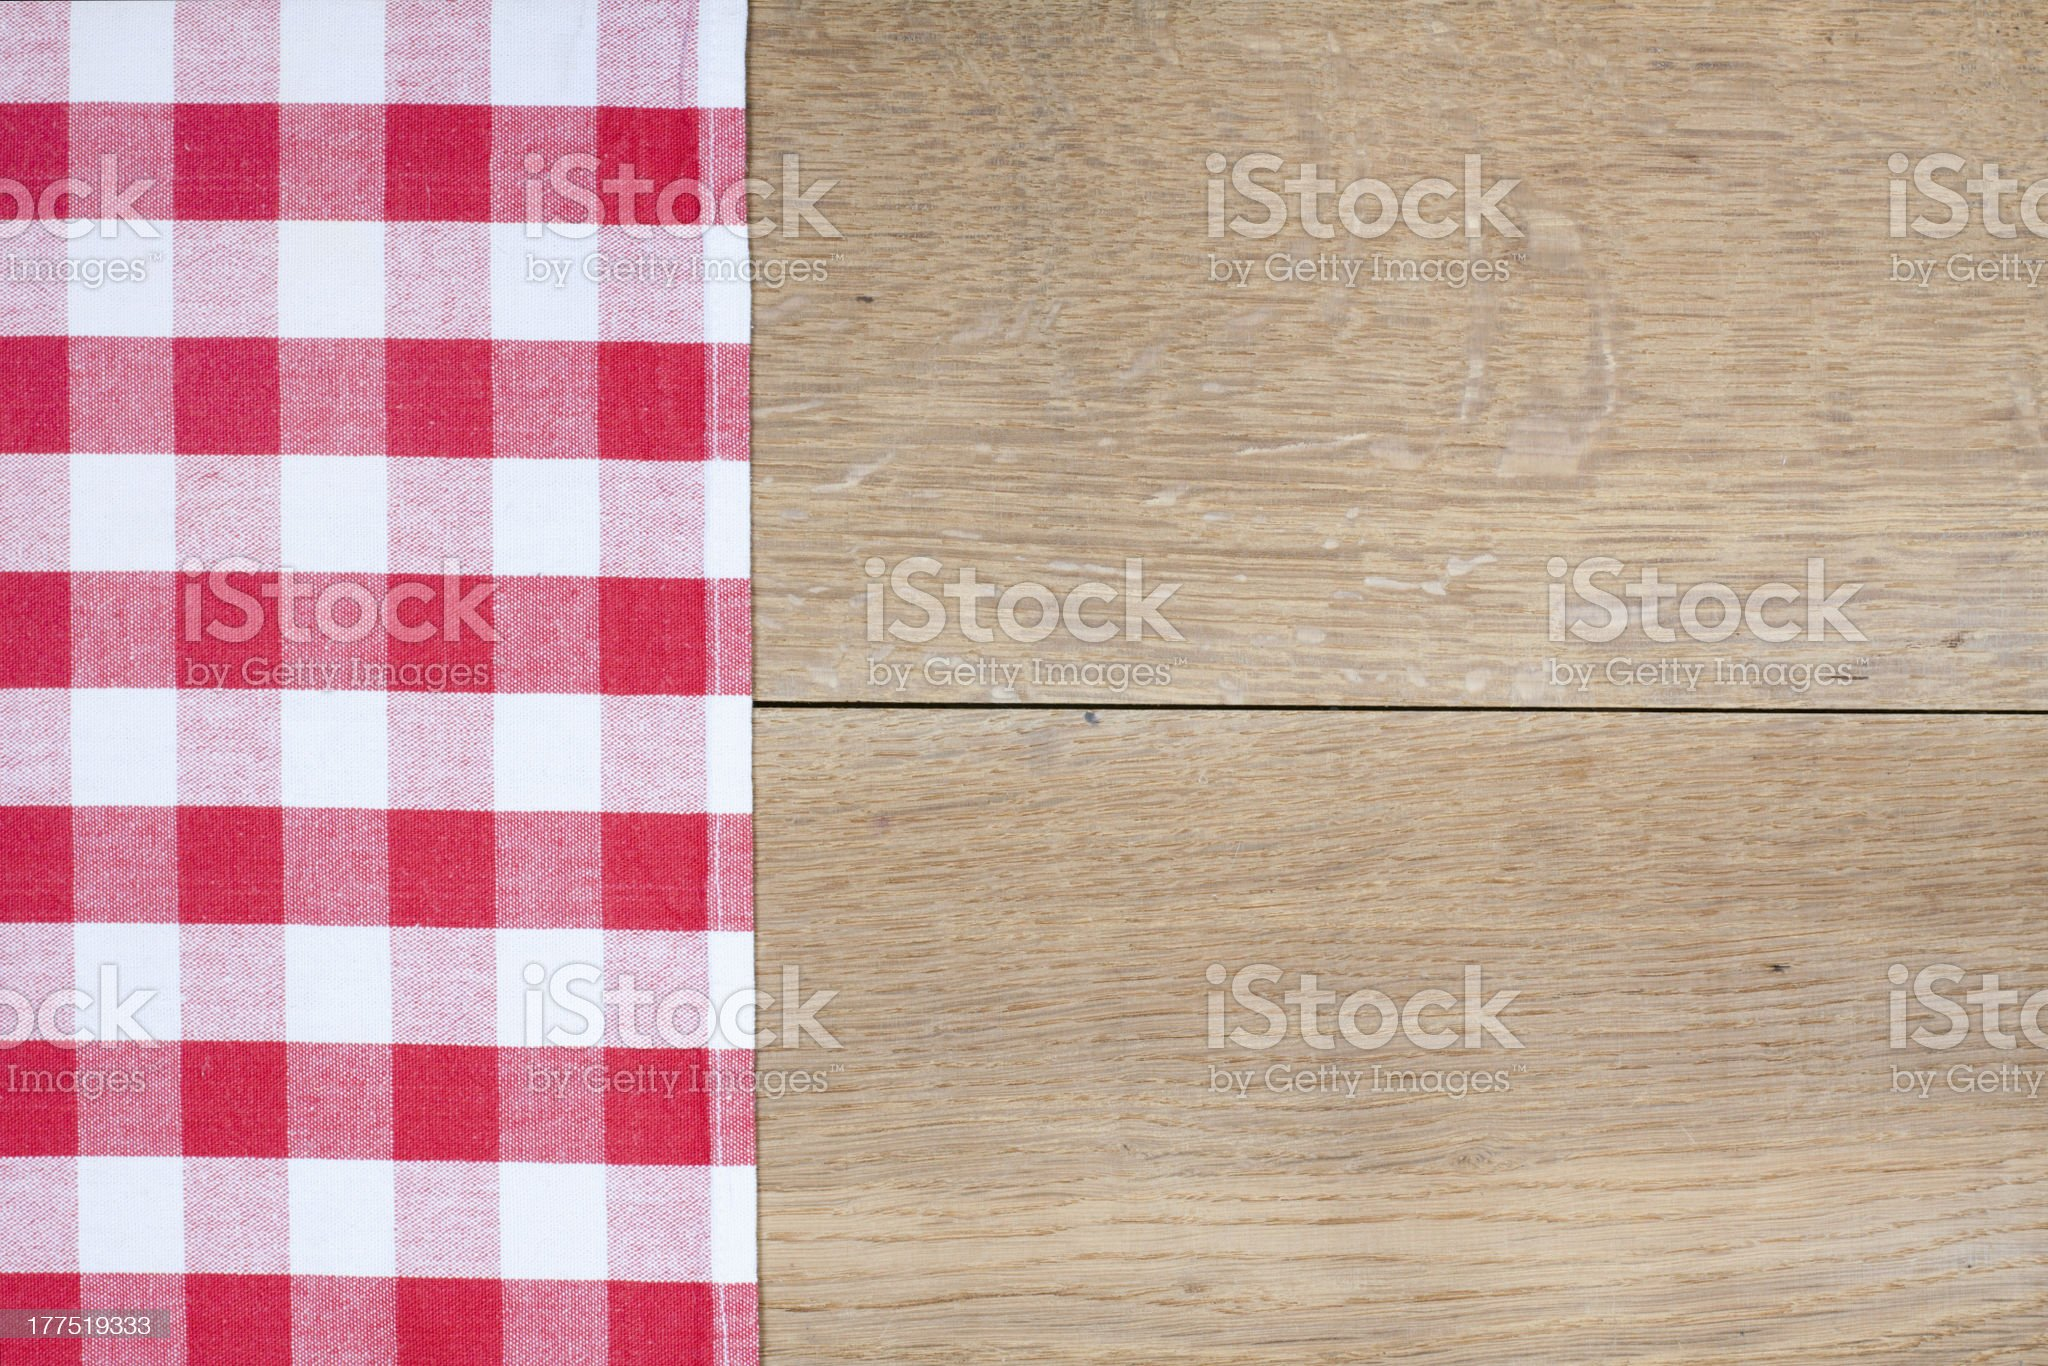 Tablecloth textile texture on wooden table background royalty-free stock photo